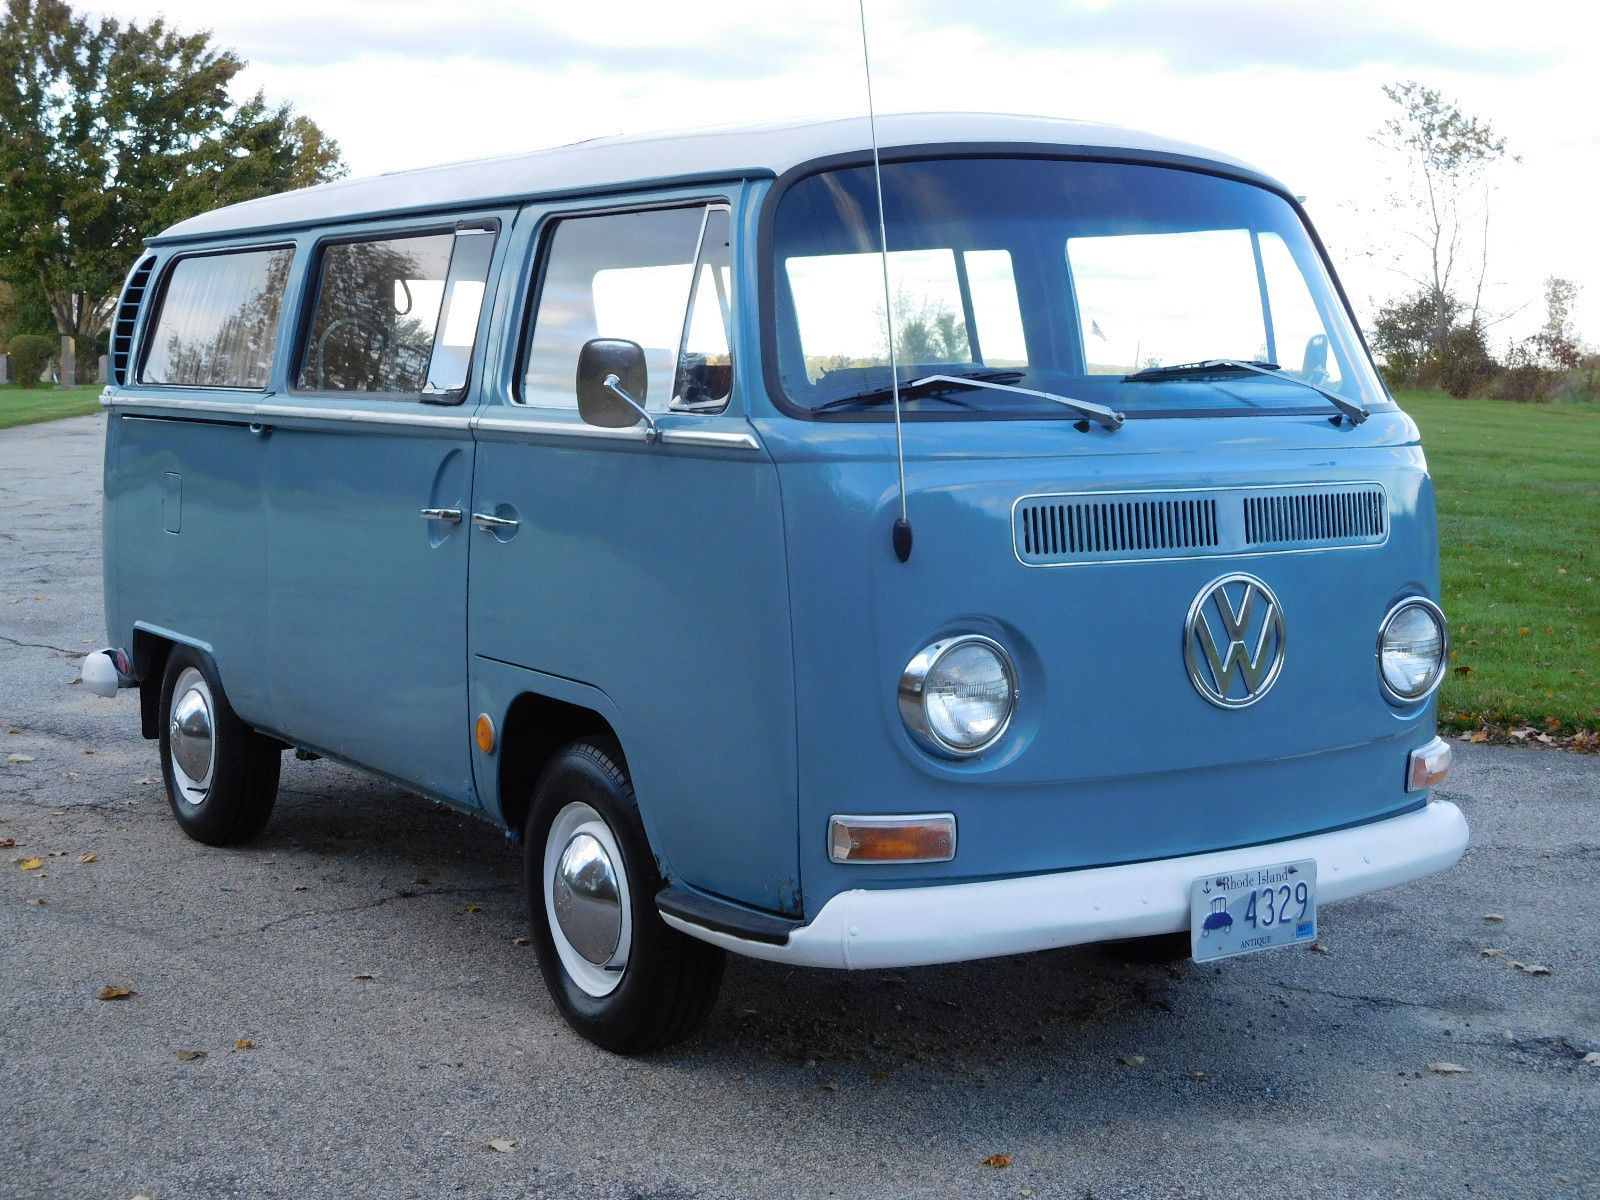 1969 Volkswagonbus Vanagon Deluxe Sunroof With A Westfalia